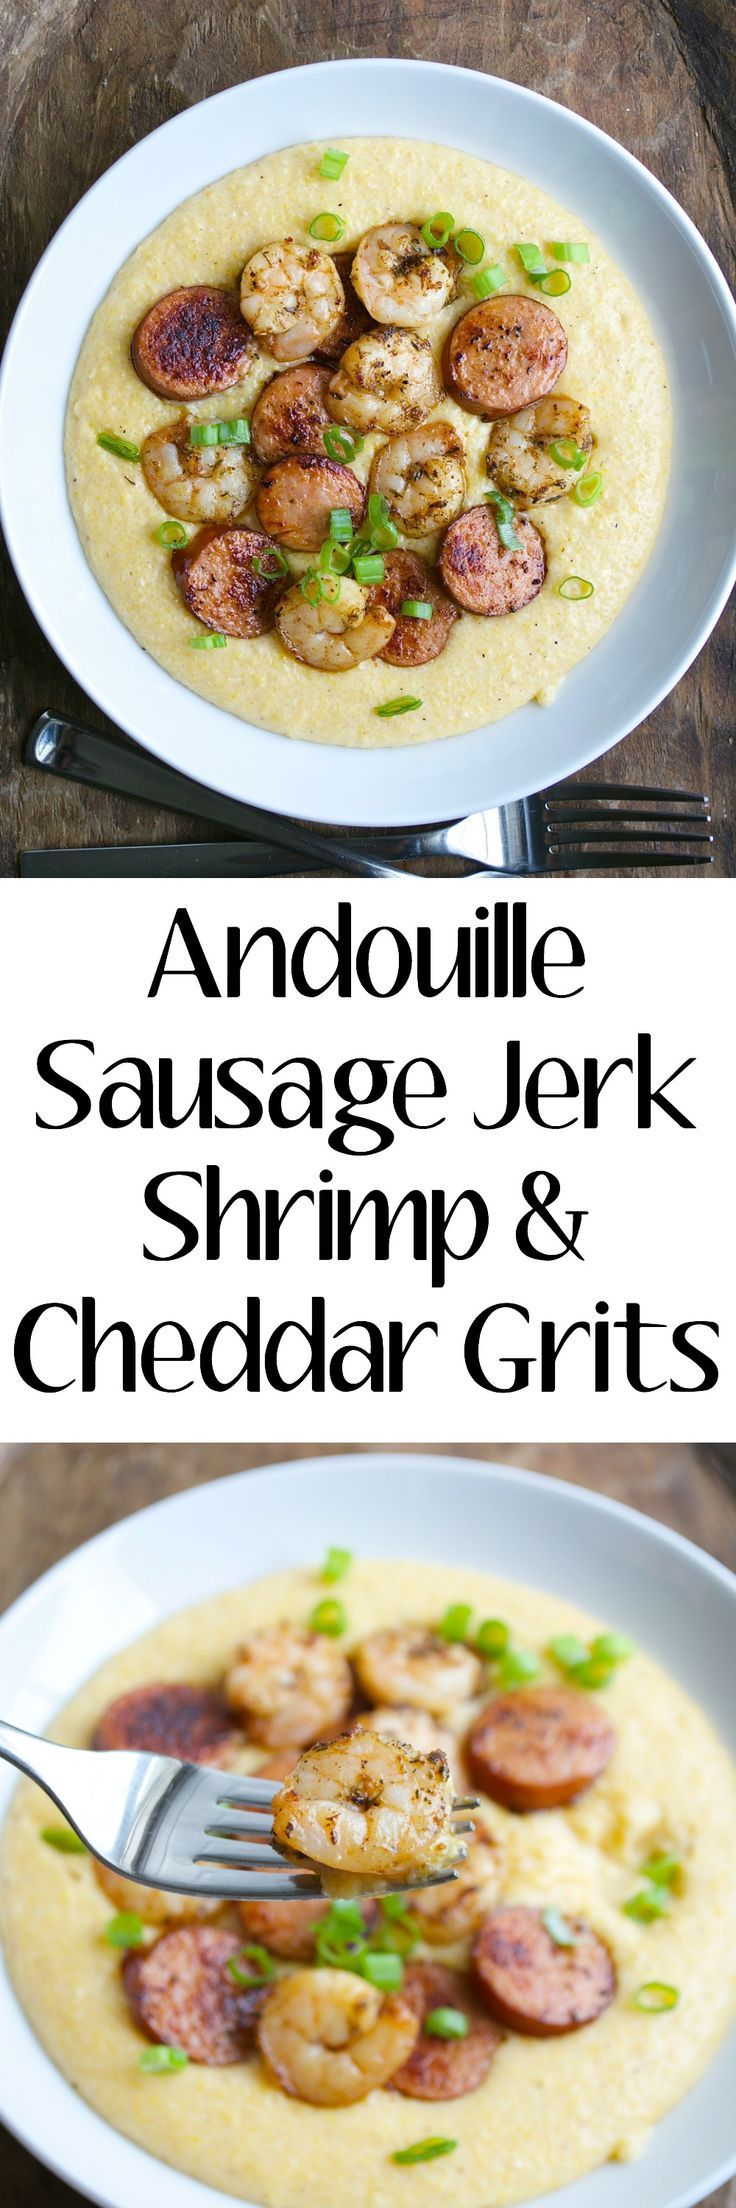 ... Grits $ on Pinterest | Bacon, Southern style and Easy shrimp and grits